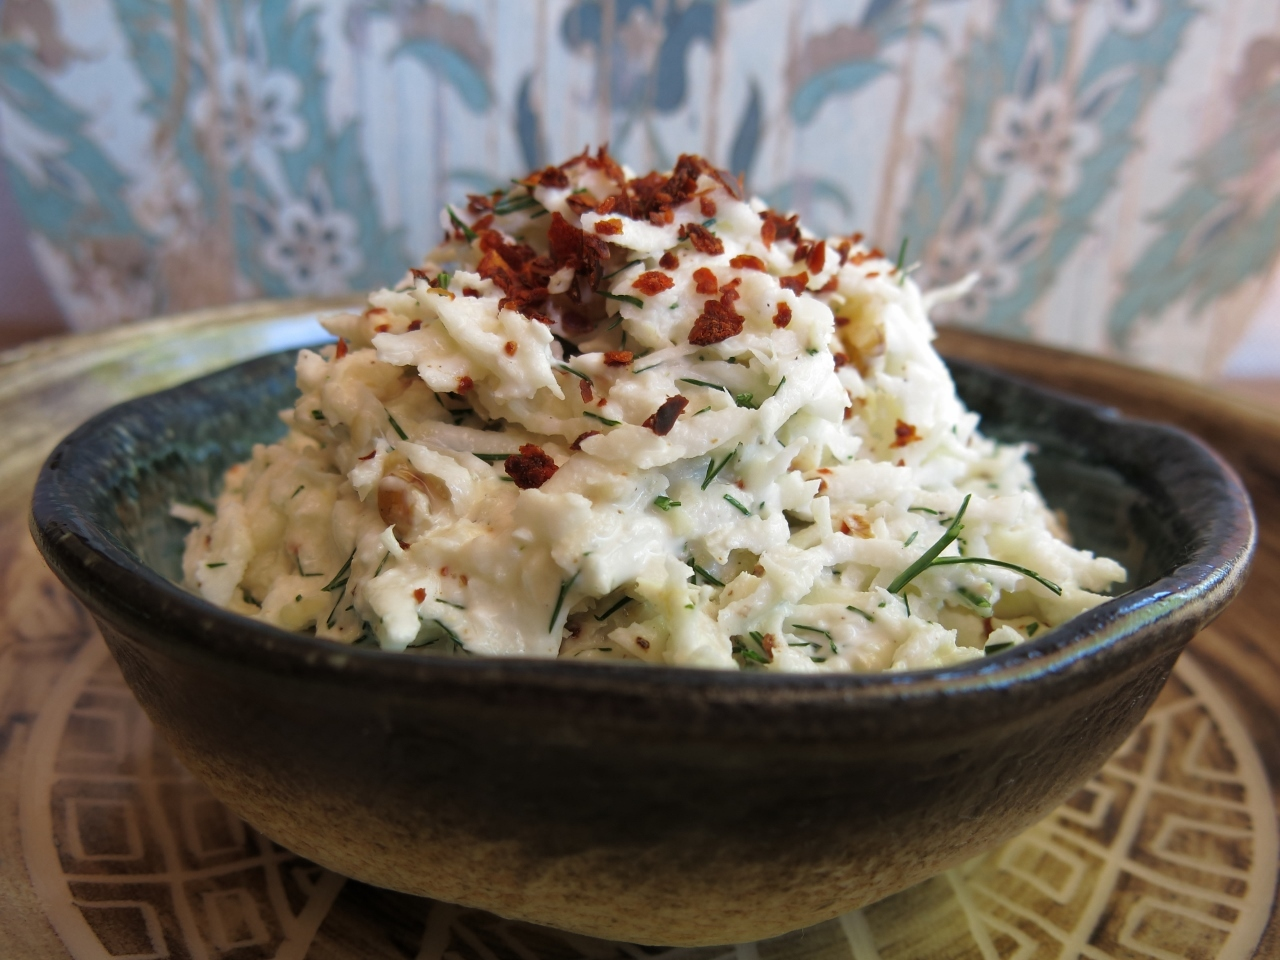 Raw Celeriac Salad with Walnuts and Dill